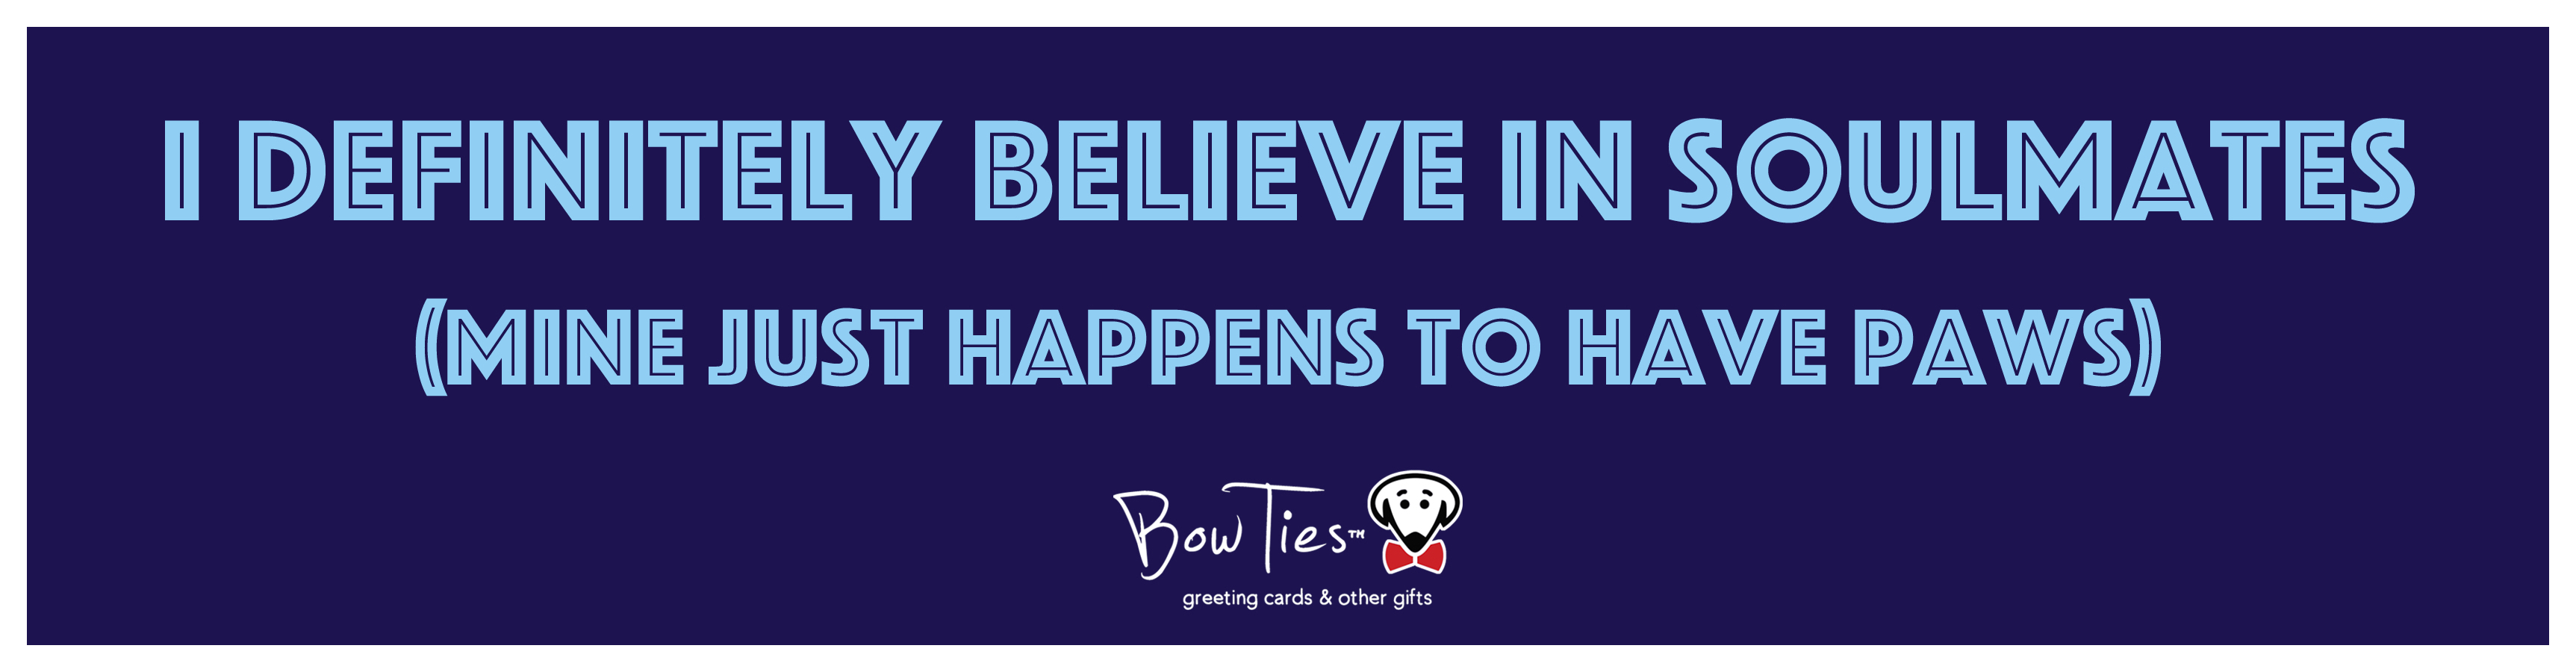 I definitely believe in soulmates. (Mine just happens to have paws) – sticker